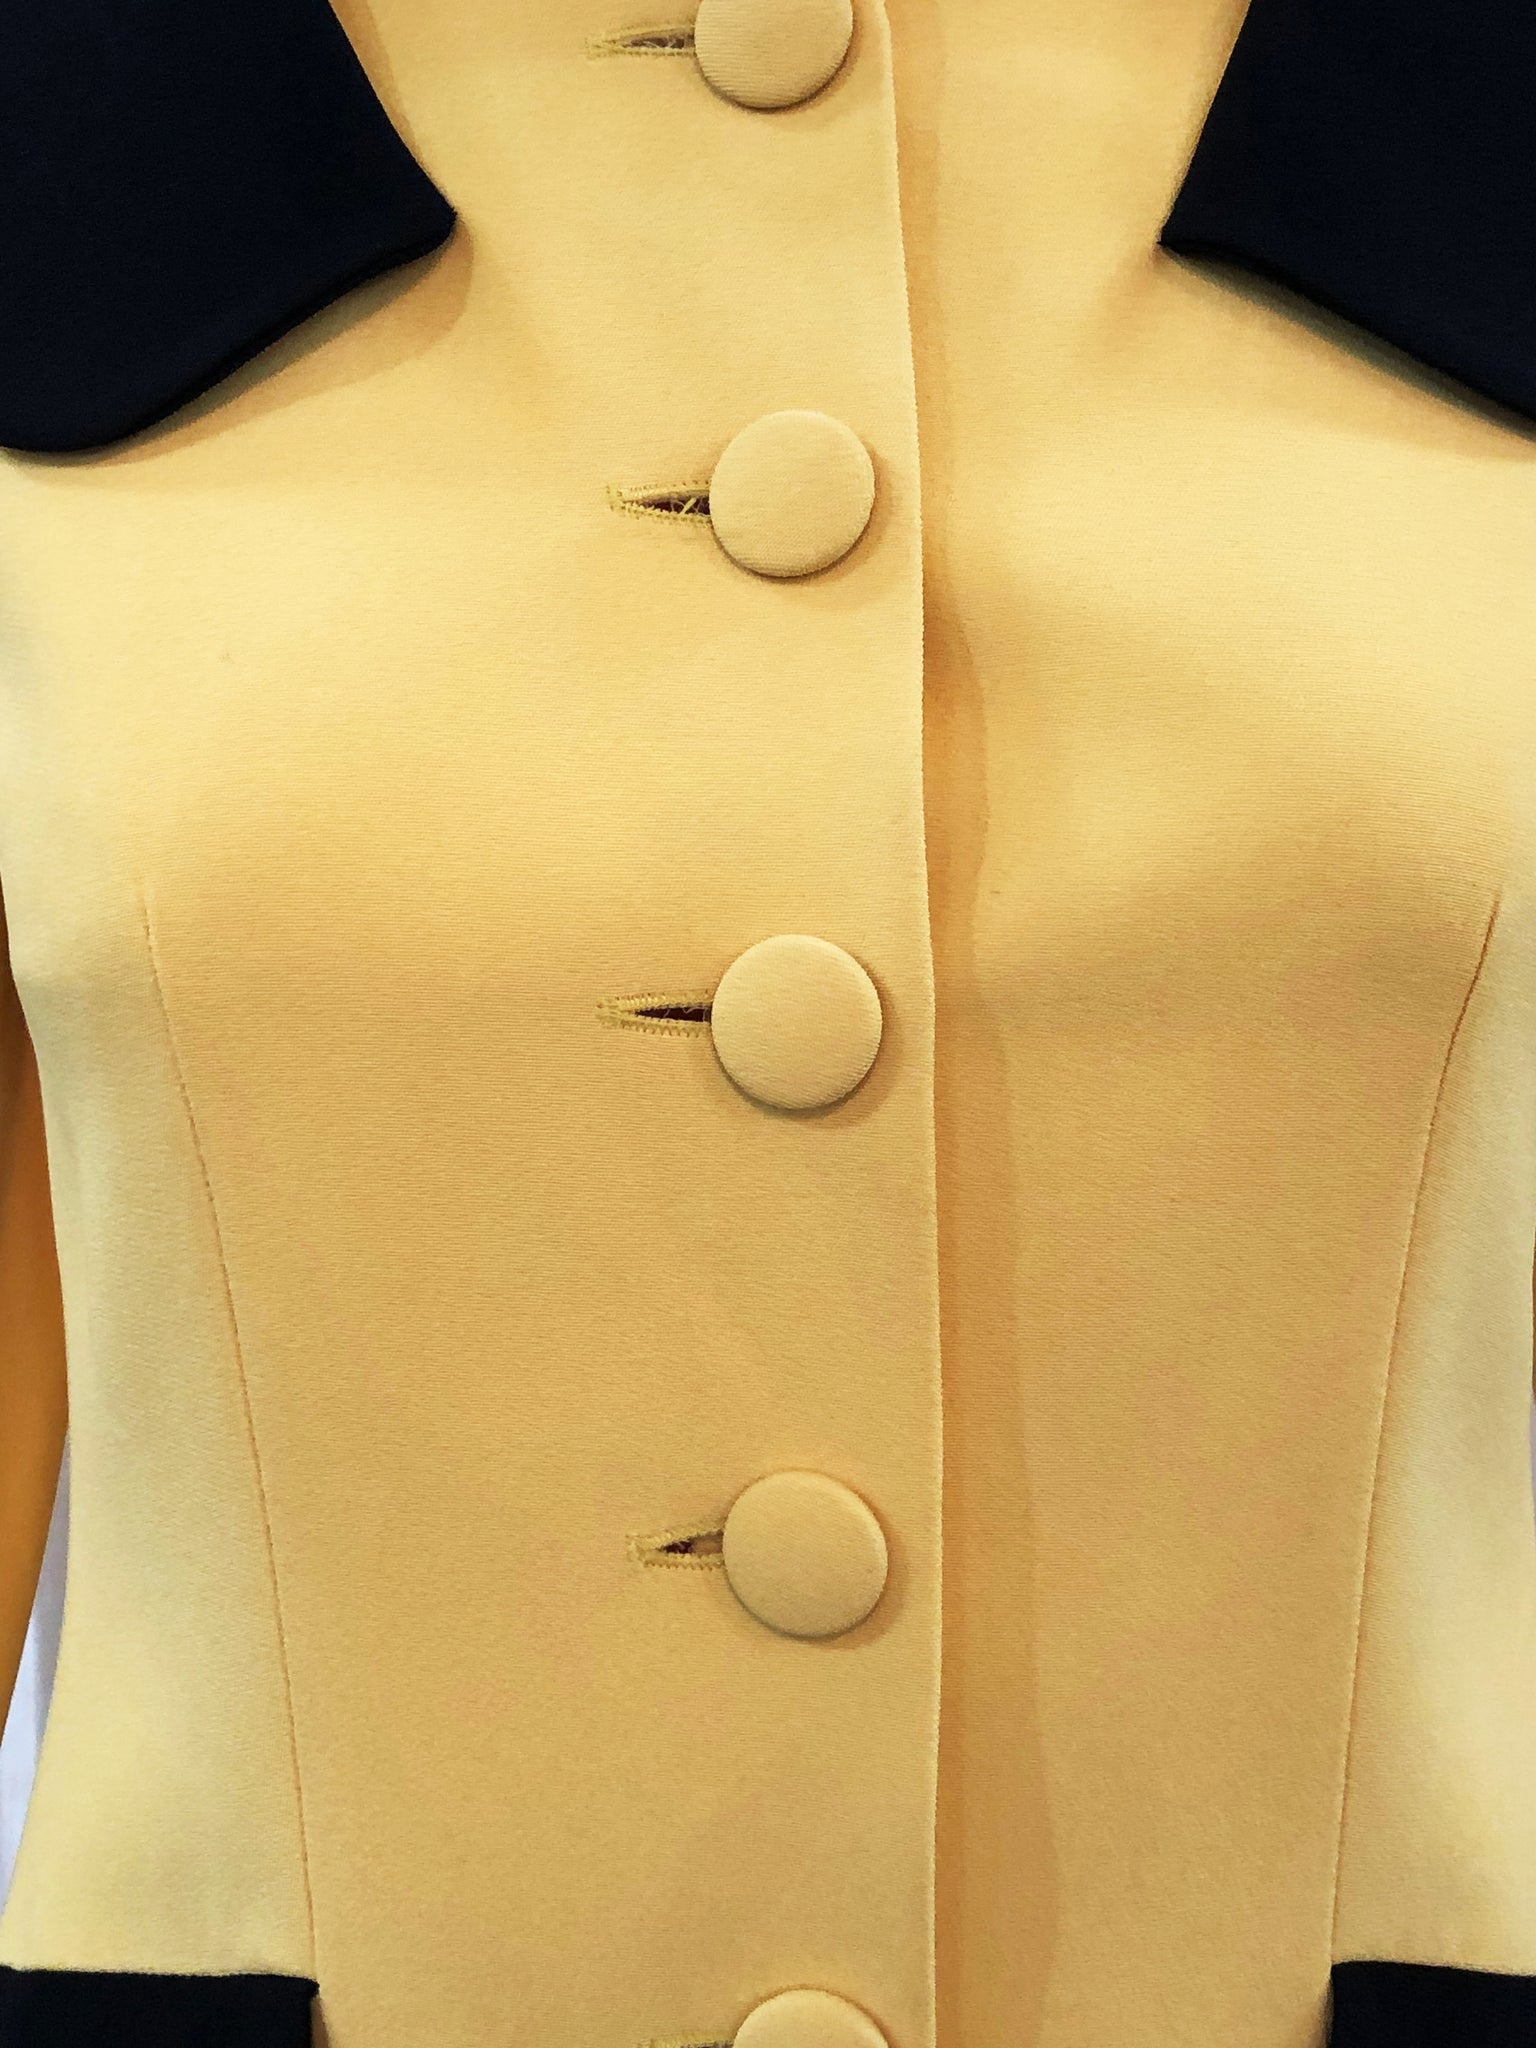 Moschino Yellow and Black Bumblebee Jacket Detail 5 of 5